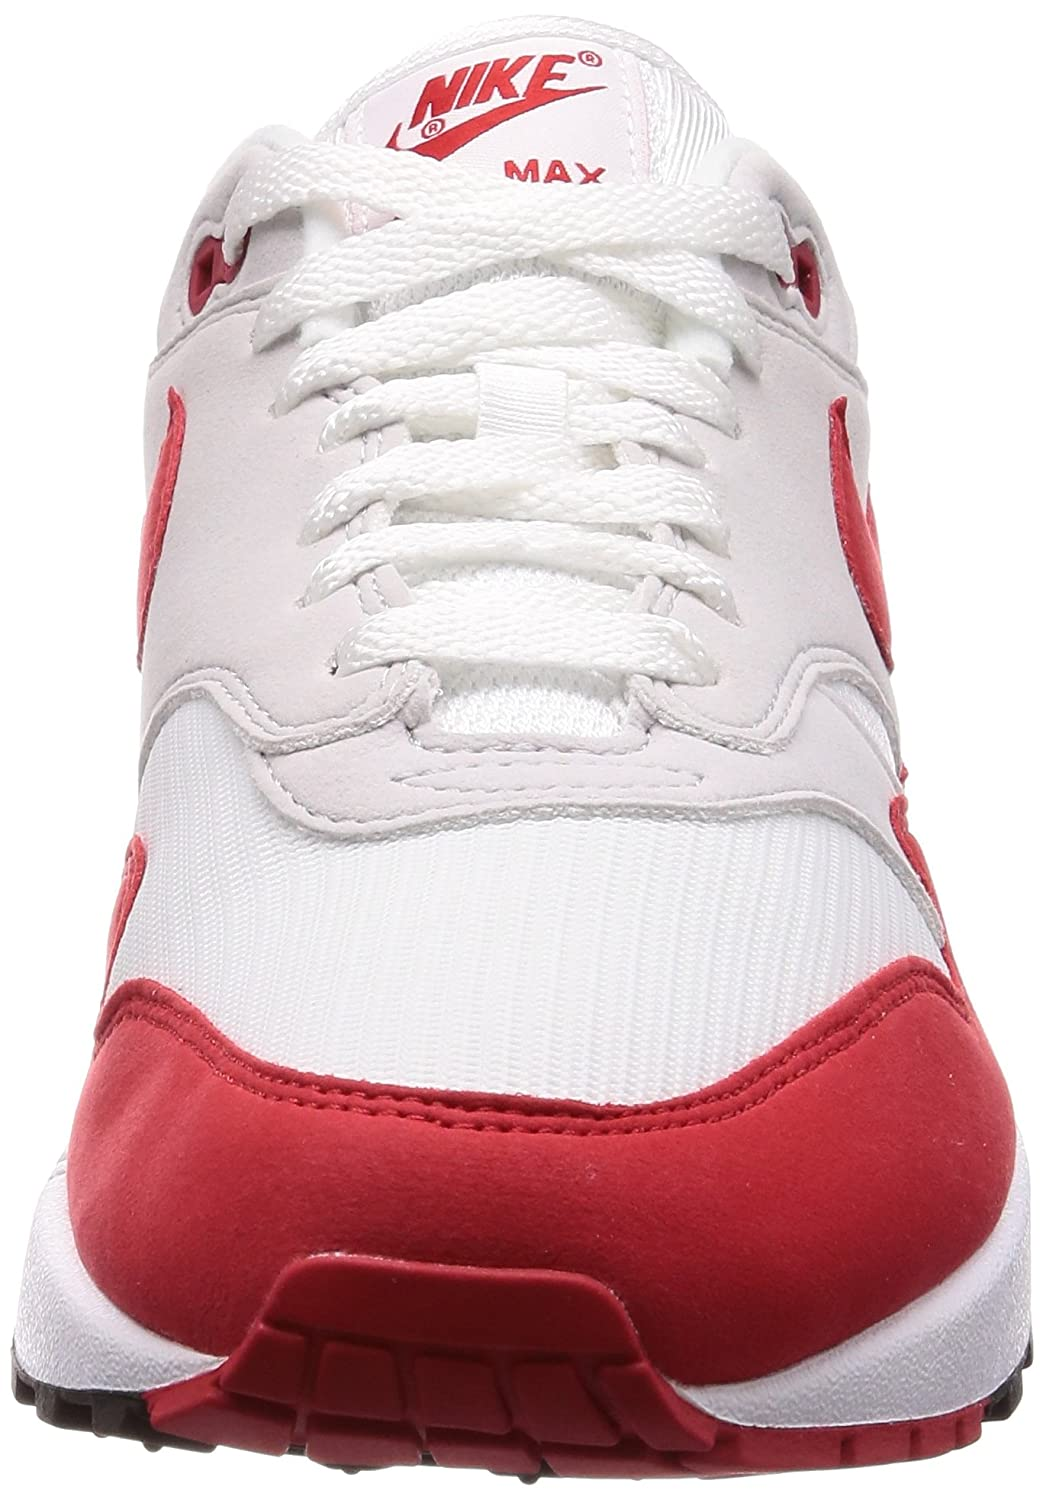 low priced 80b5b 542fc Nike Air Max 1 Anniversary OG - White University Red Trainer  Amazon.co.uk   Shoes   Bags